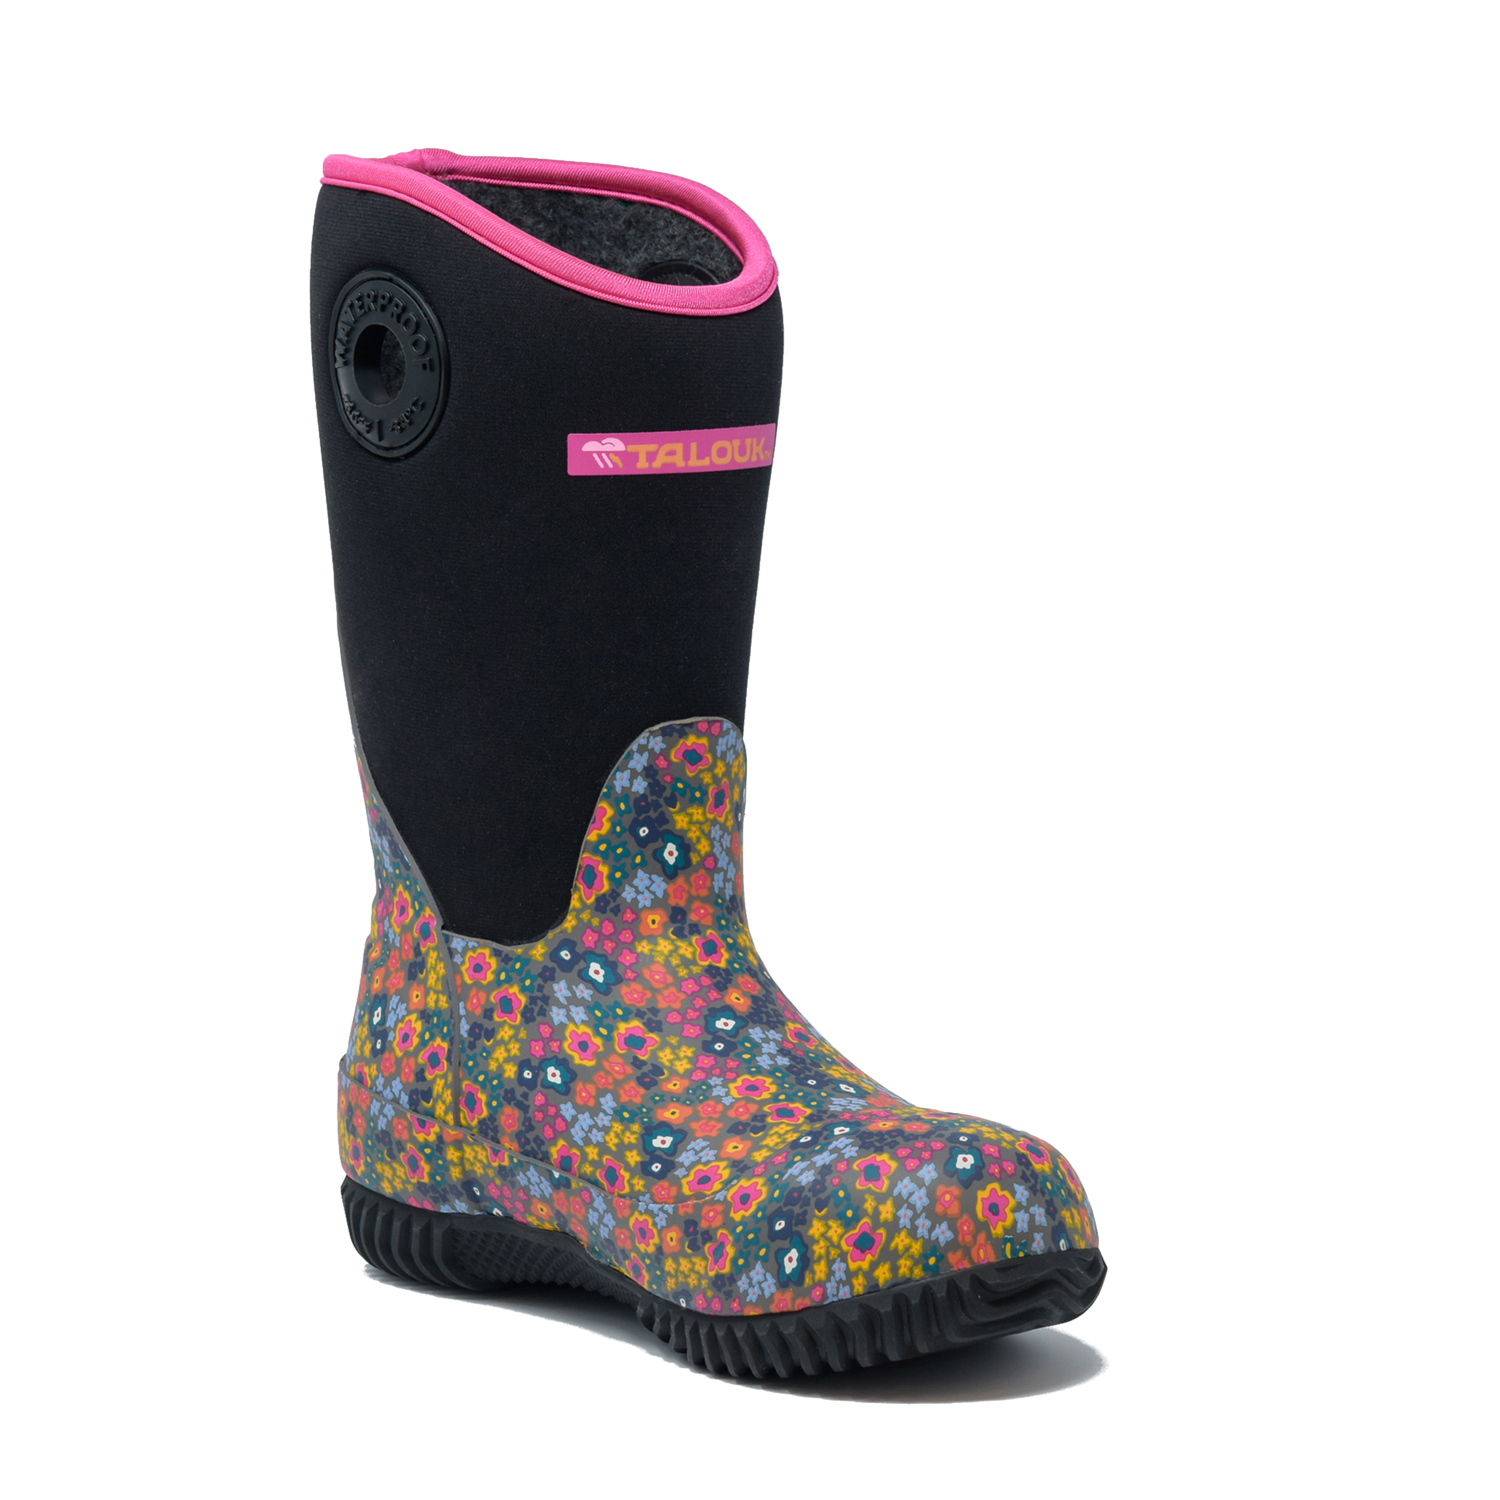 talouk outdoor pink paisley insulated rubber waterproof rain boots for kids